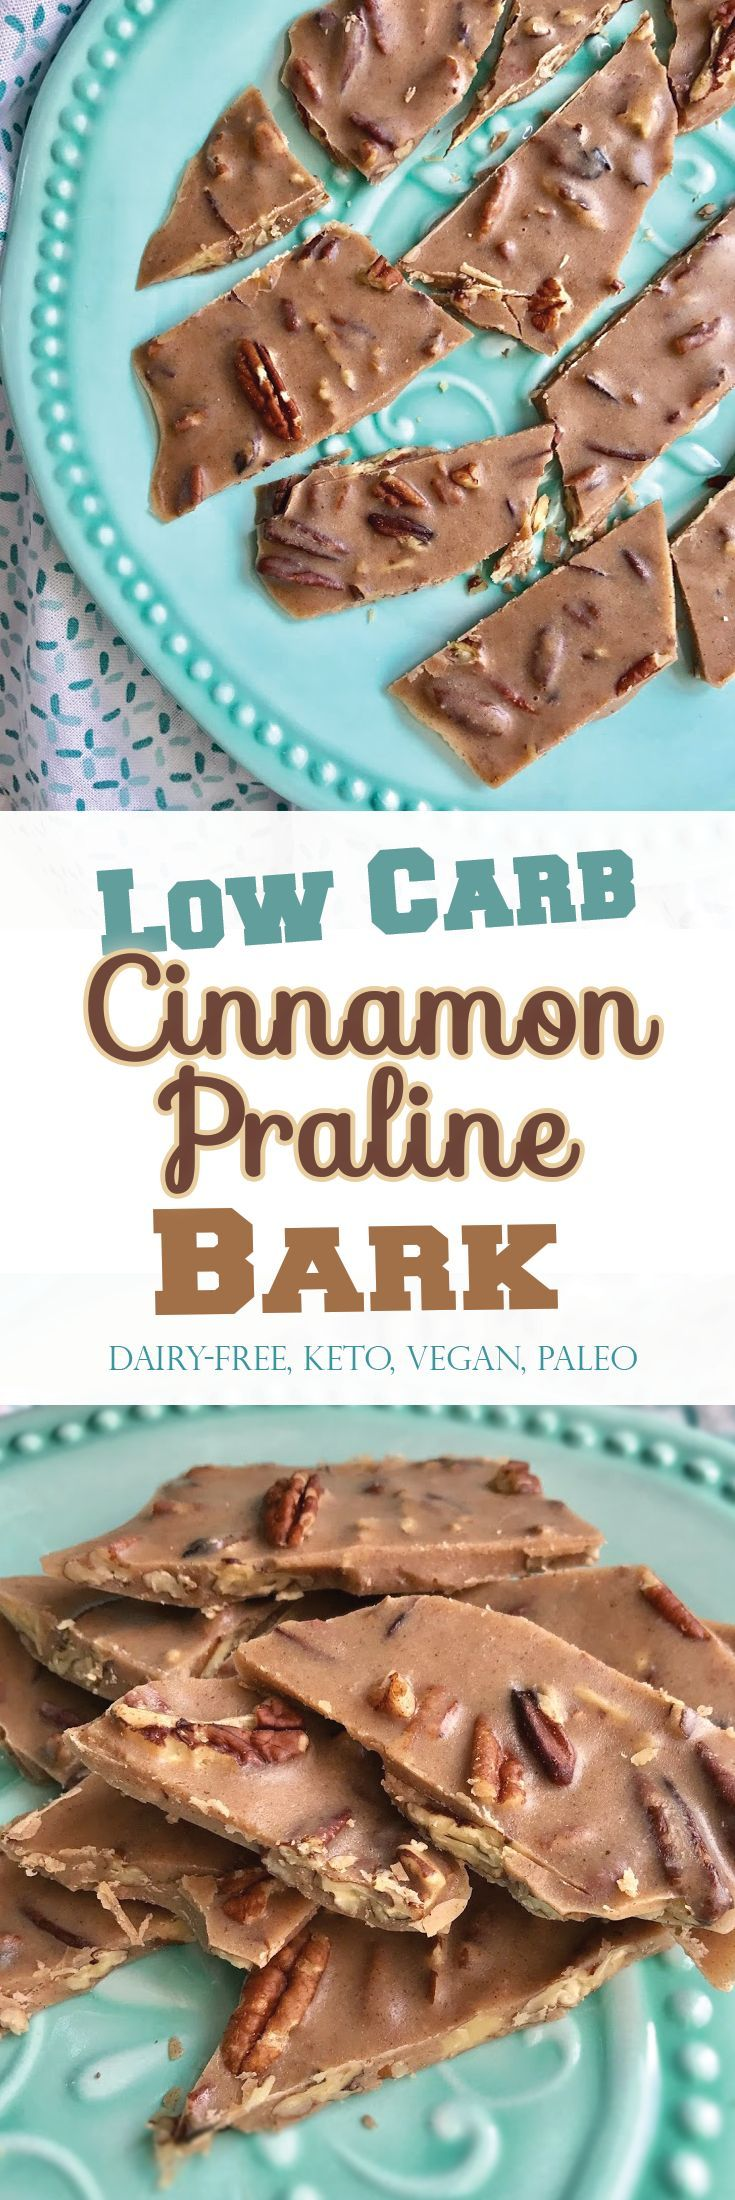 Crunchy, munchy pecan goodness without any SUGAR or dairy! Low-Carb Cinnamon Praline Bark that's Super easy (and so Addictive!) #vegan #keto #paleo PrettyPies.com